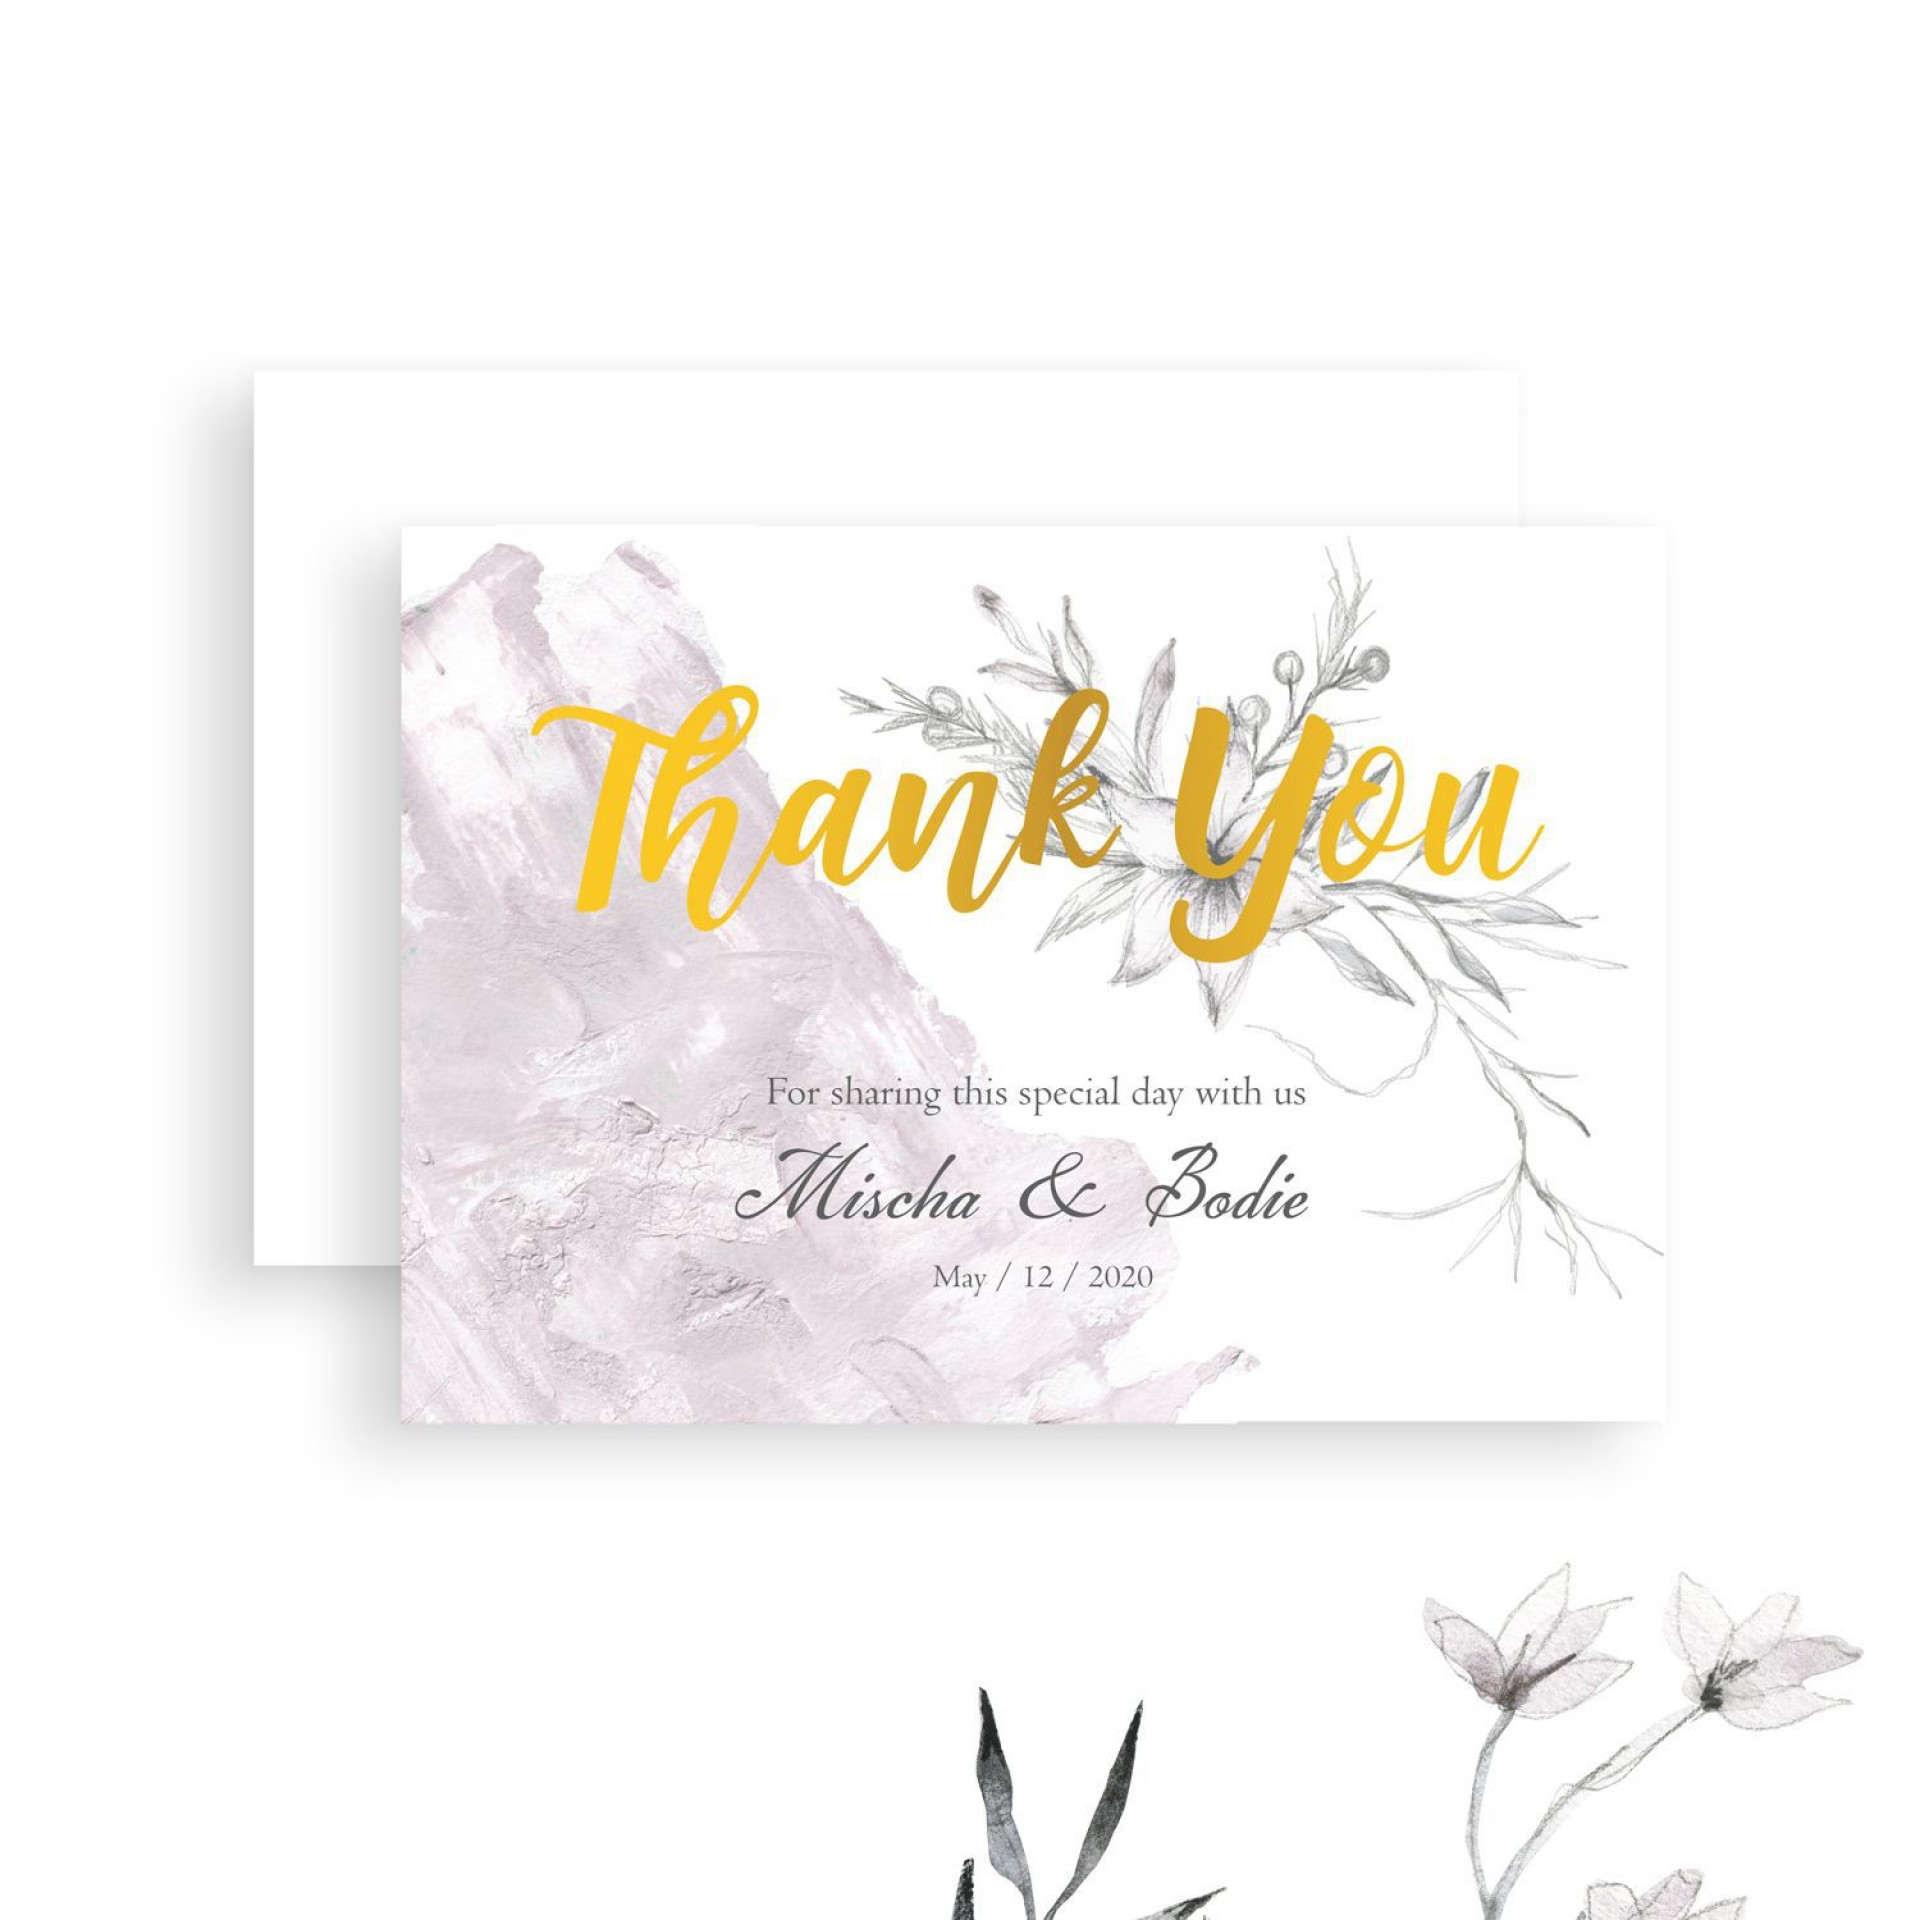 008 Wonderful Diy Wedding Thank You Card Template Example  Templates1920